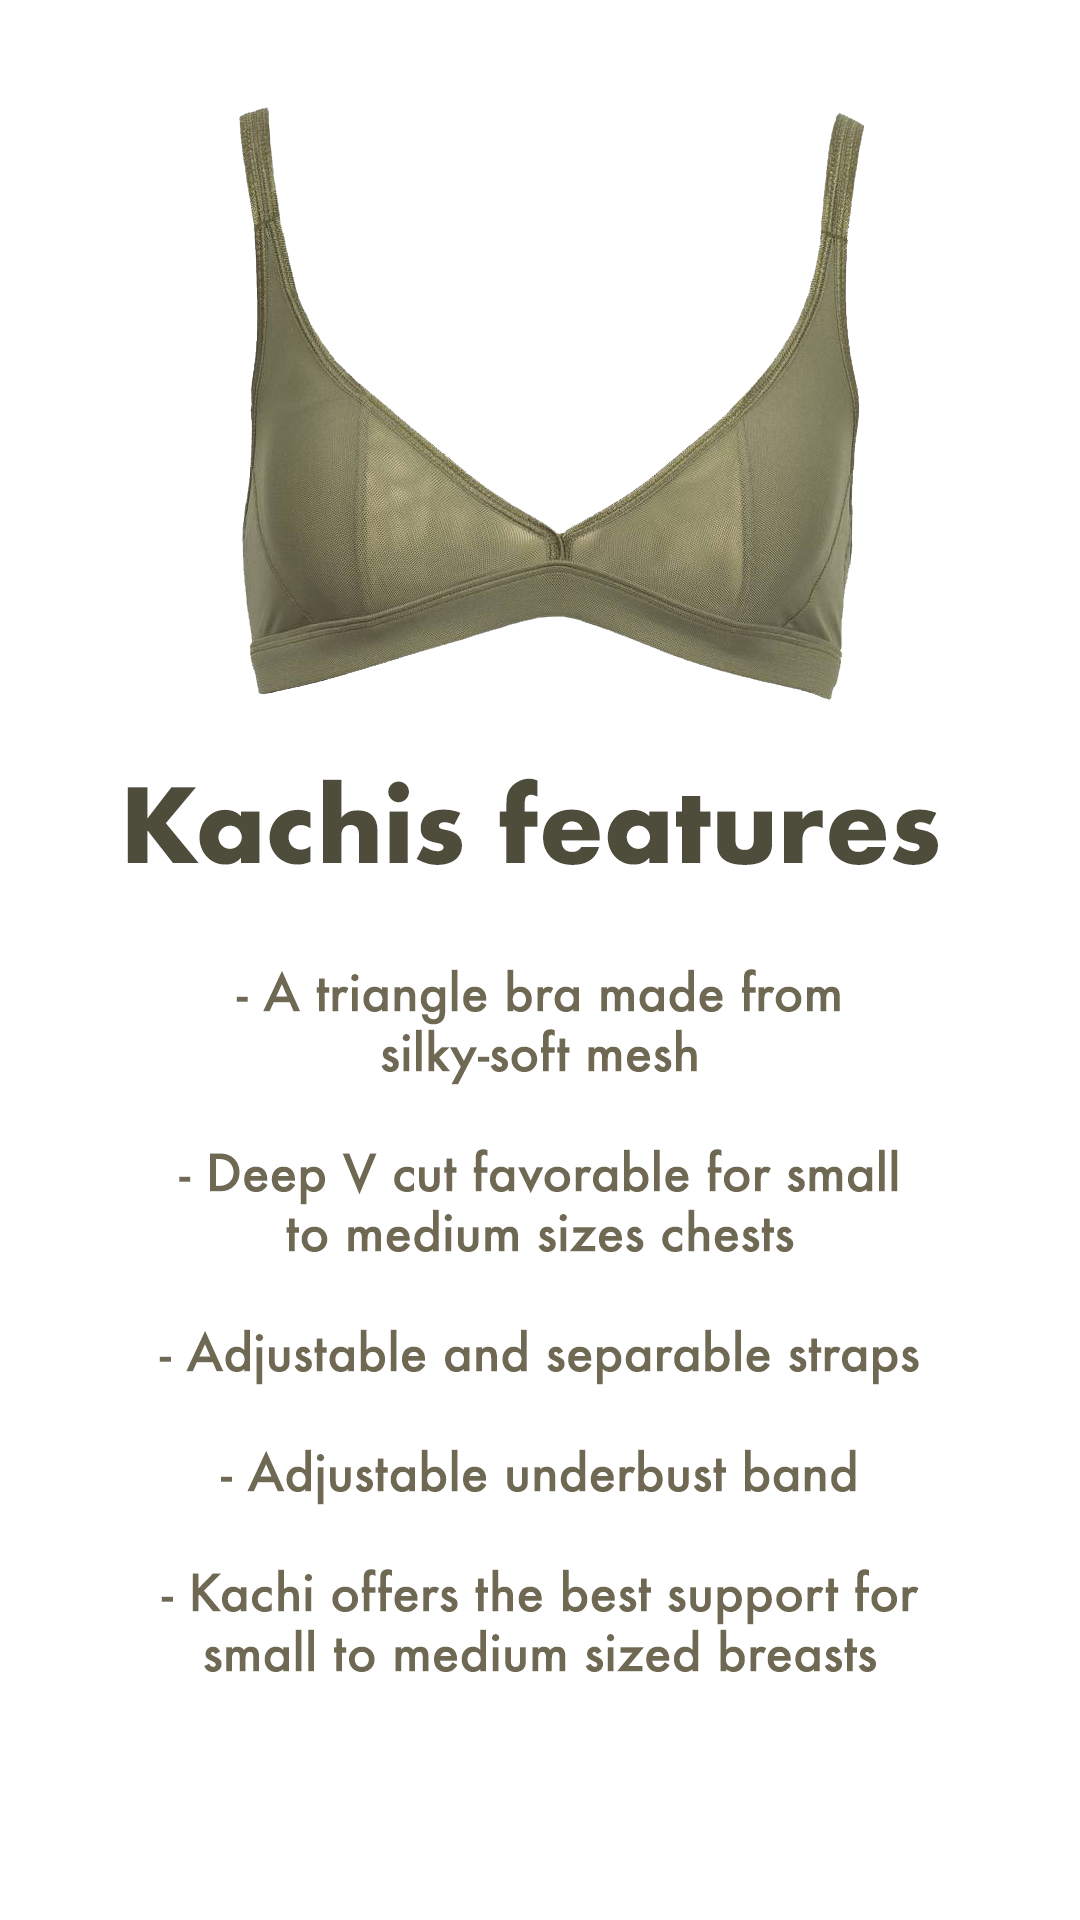 3 Kachis features